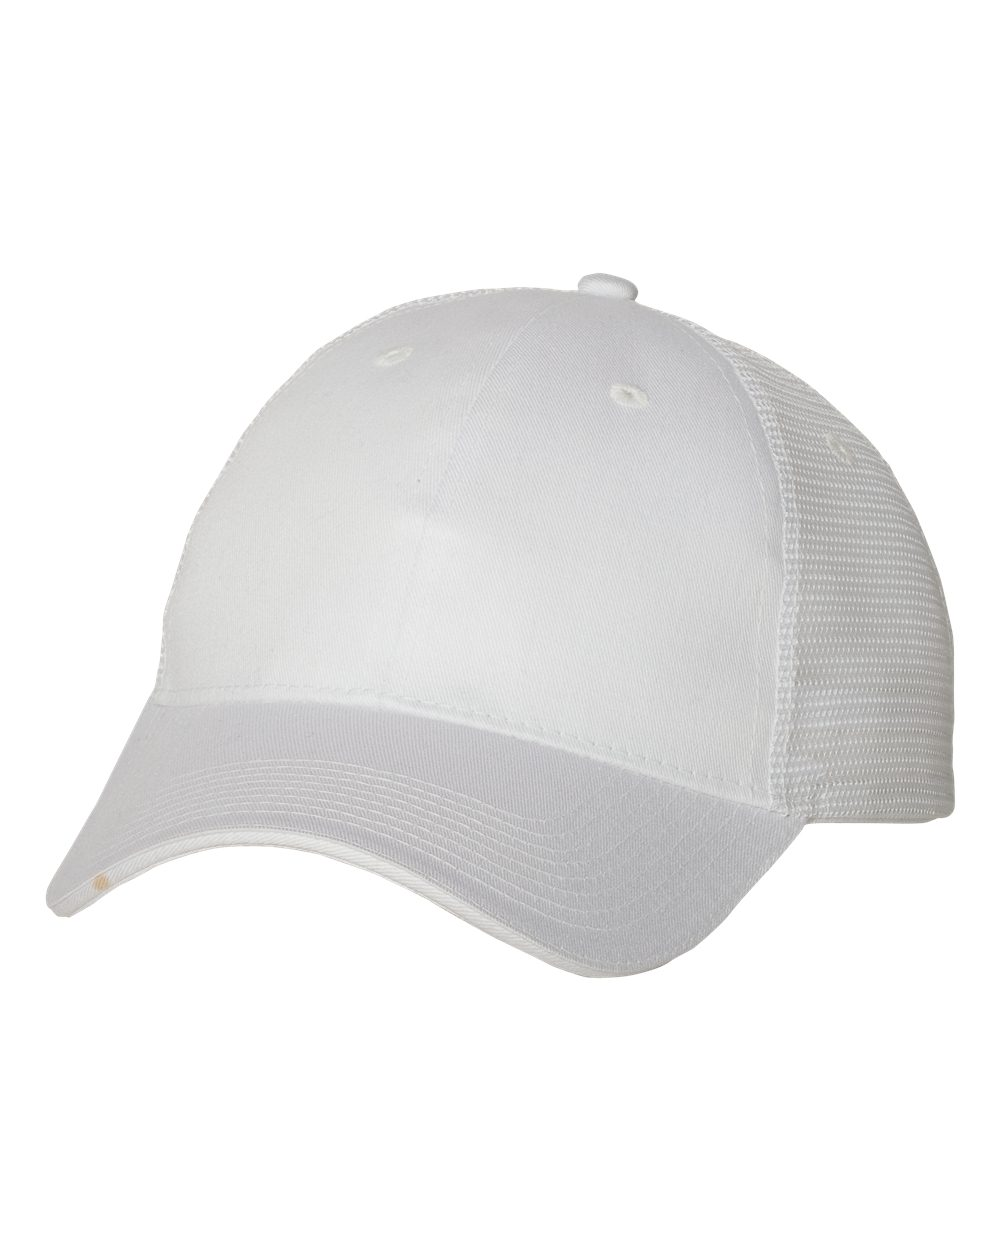 FULL WHITE TRUCKER CAP WITH LEATHER PATCH